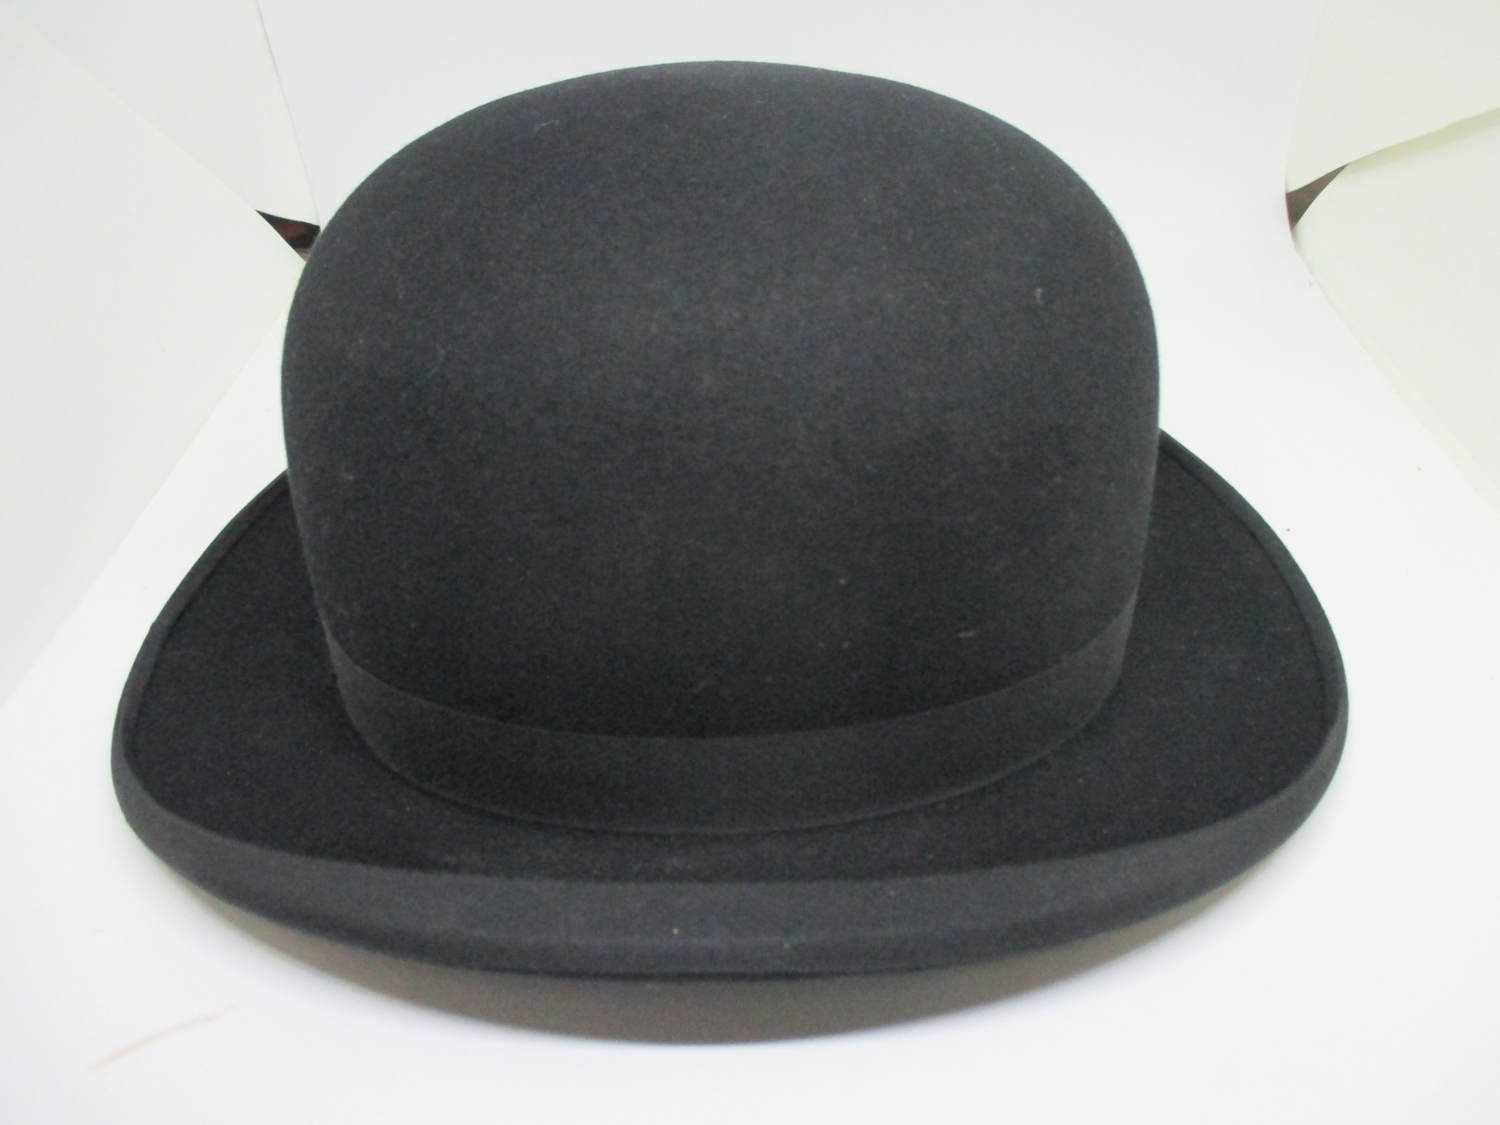 Vintage Derby Bowler Stetson 7 Men s hat New old stock original box Custom  Hats of Quality 14cd9c74abc